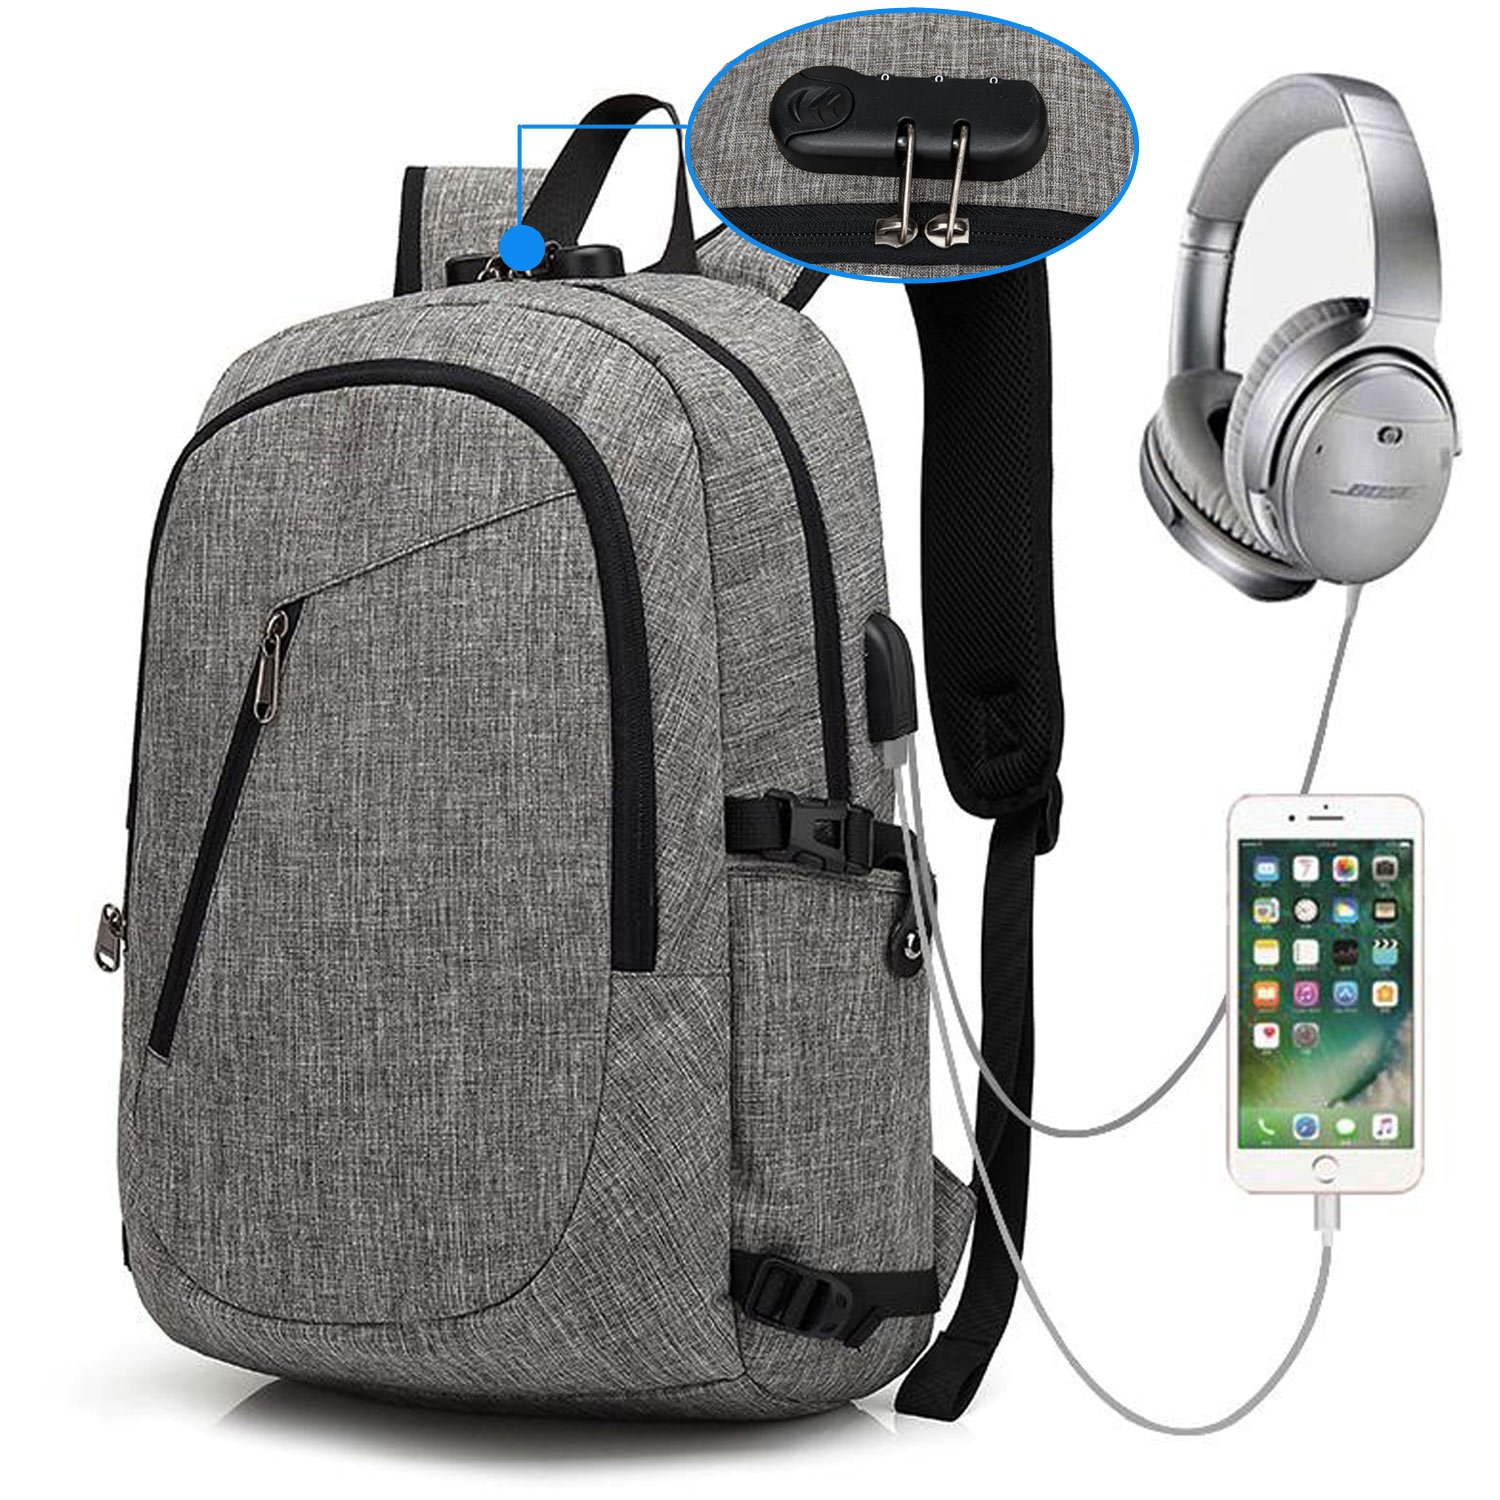 XQXA Laptop Backpack,College School Bag with USB Charging Port and Headphone Jack Water Resistant School Rucksack 15.6 Inch PC Computer Backpack Bags for Business,Work,Travel Rucksack Bookbag Grey